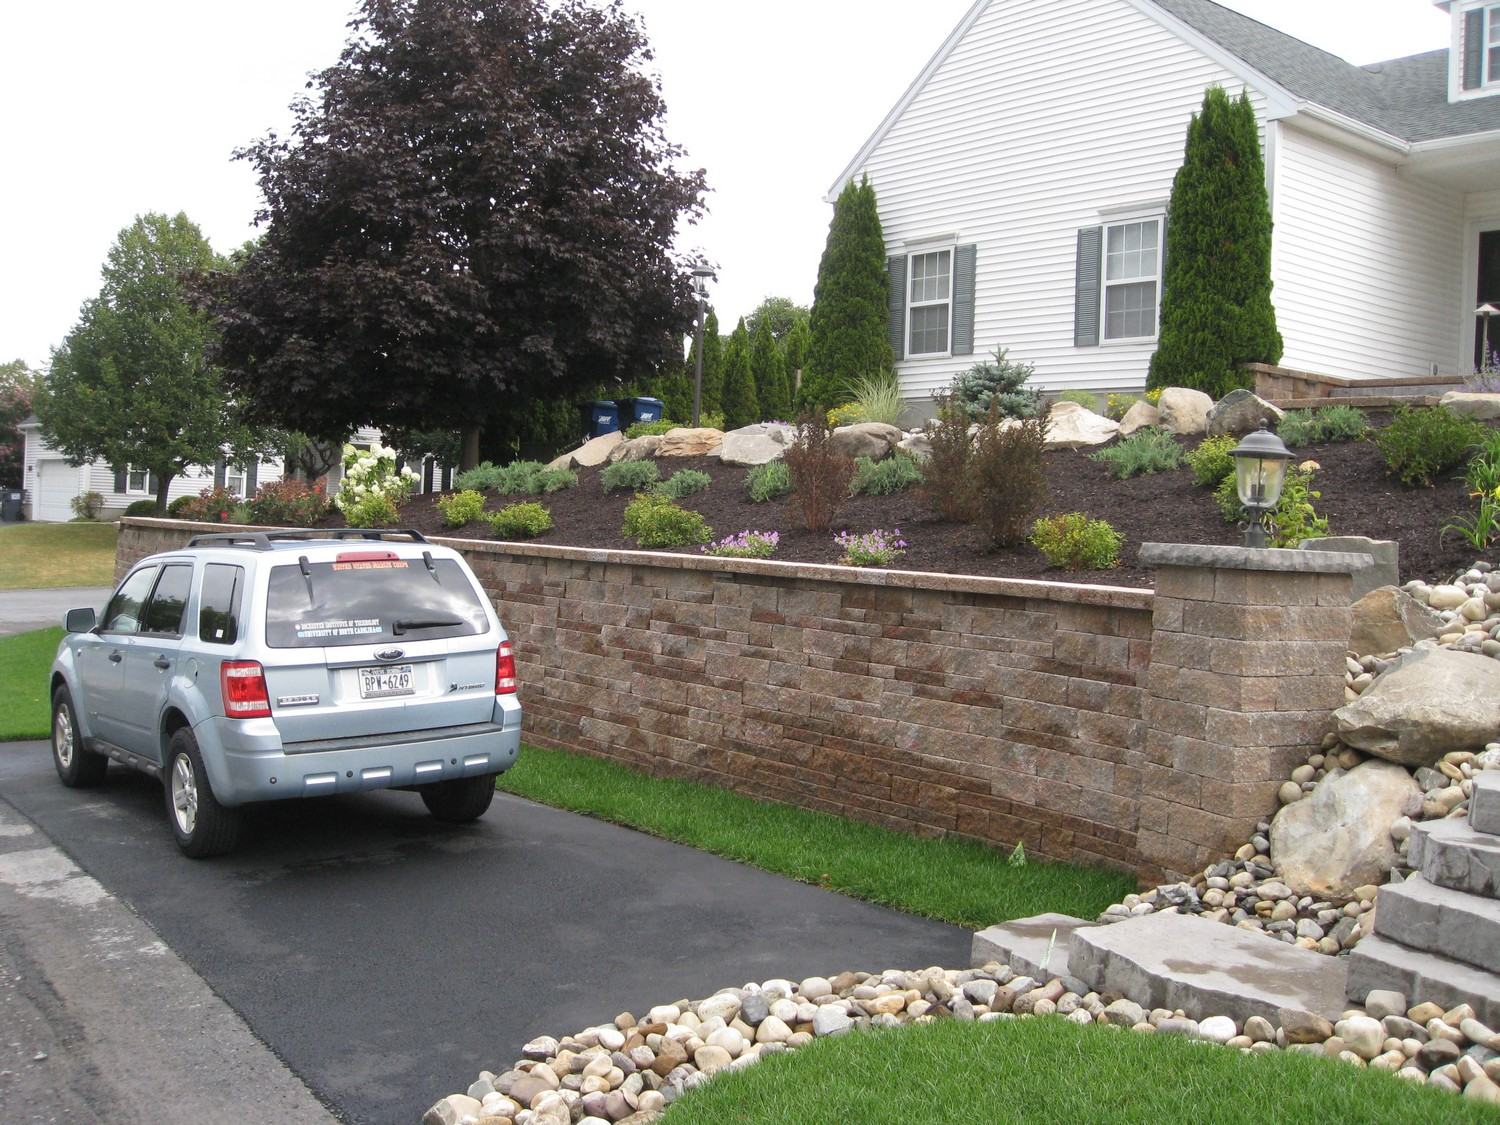 landscape retaining walls gardening on a slope using stones in the garden